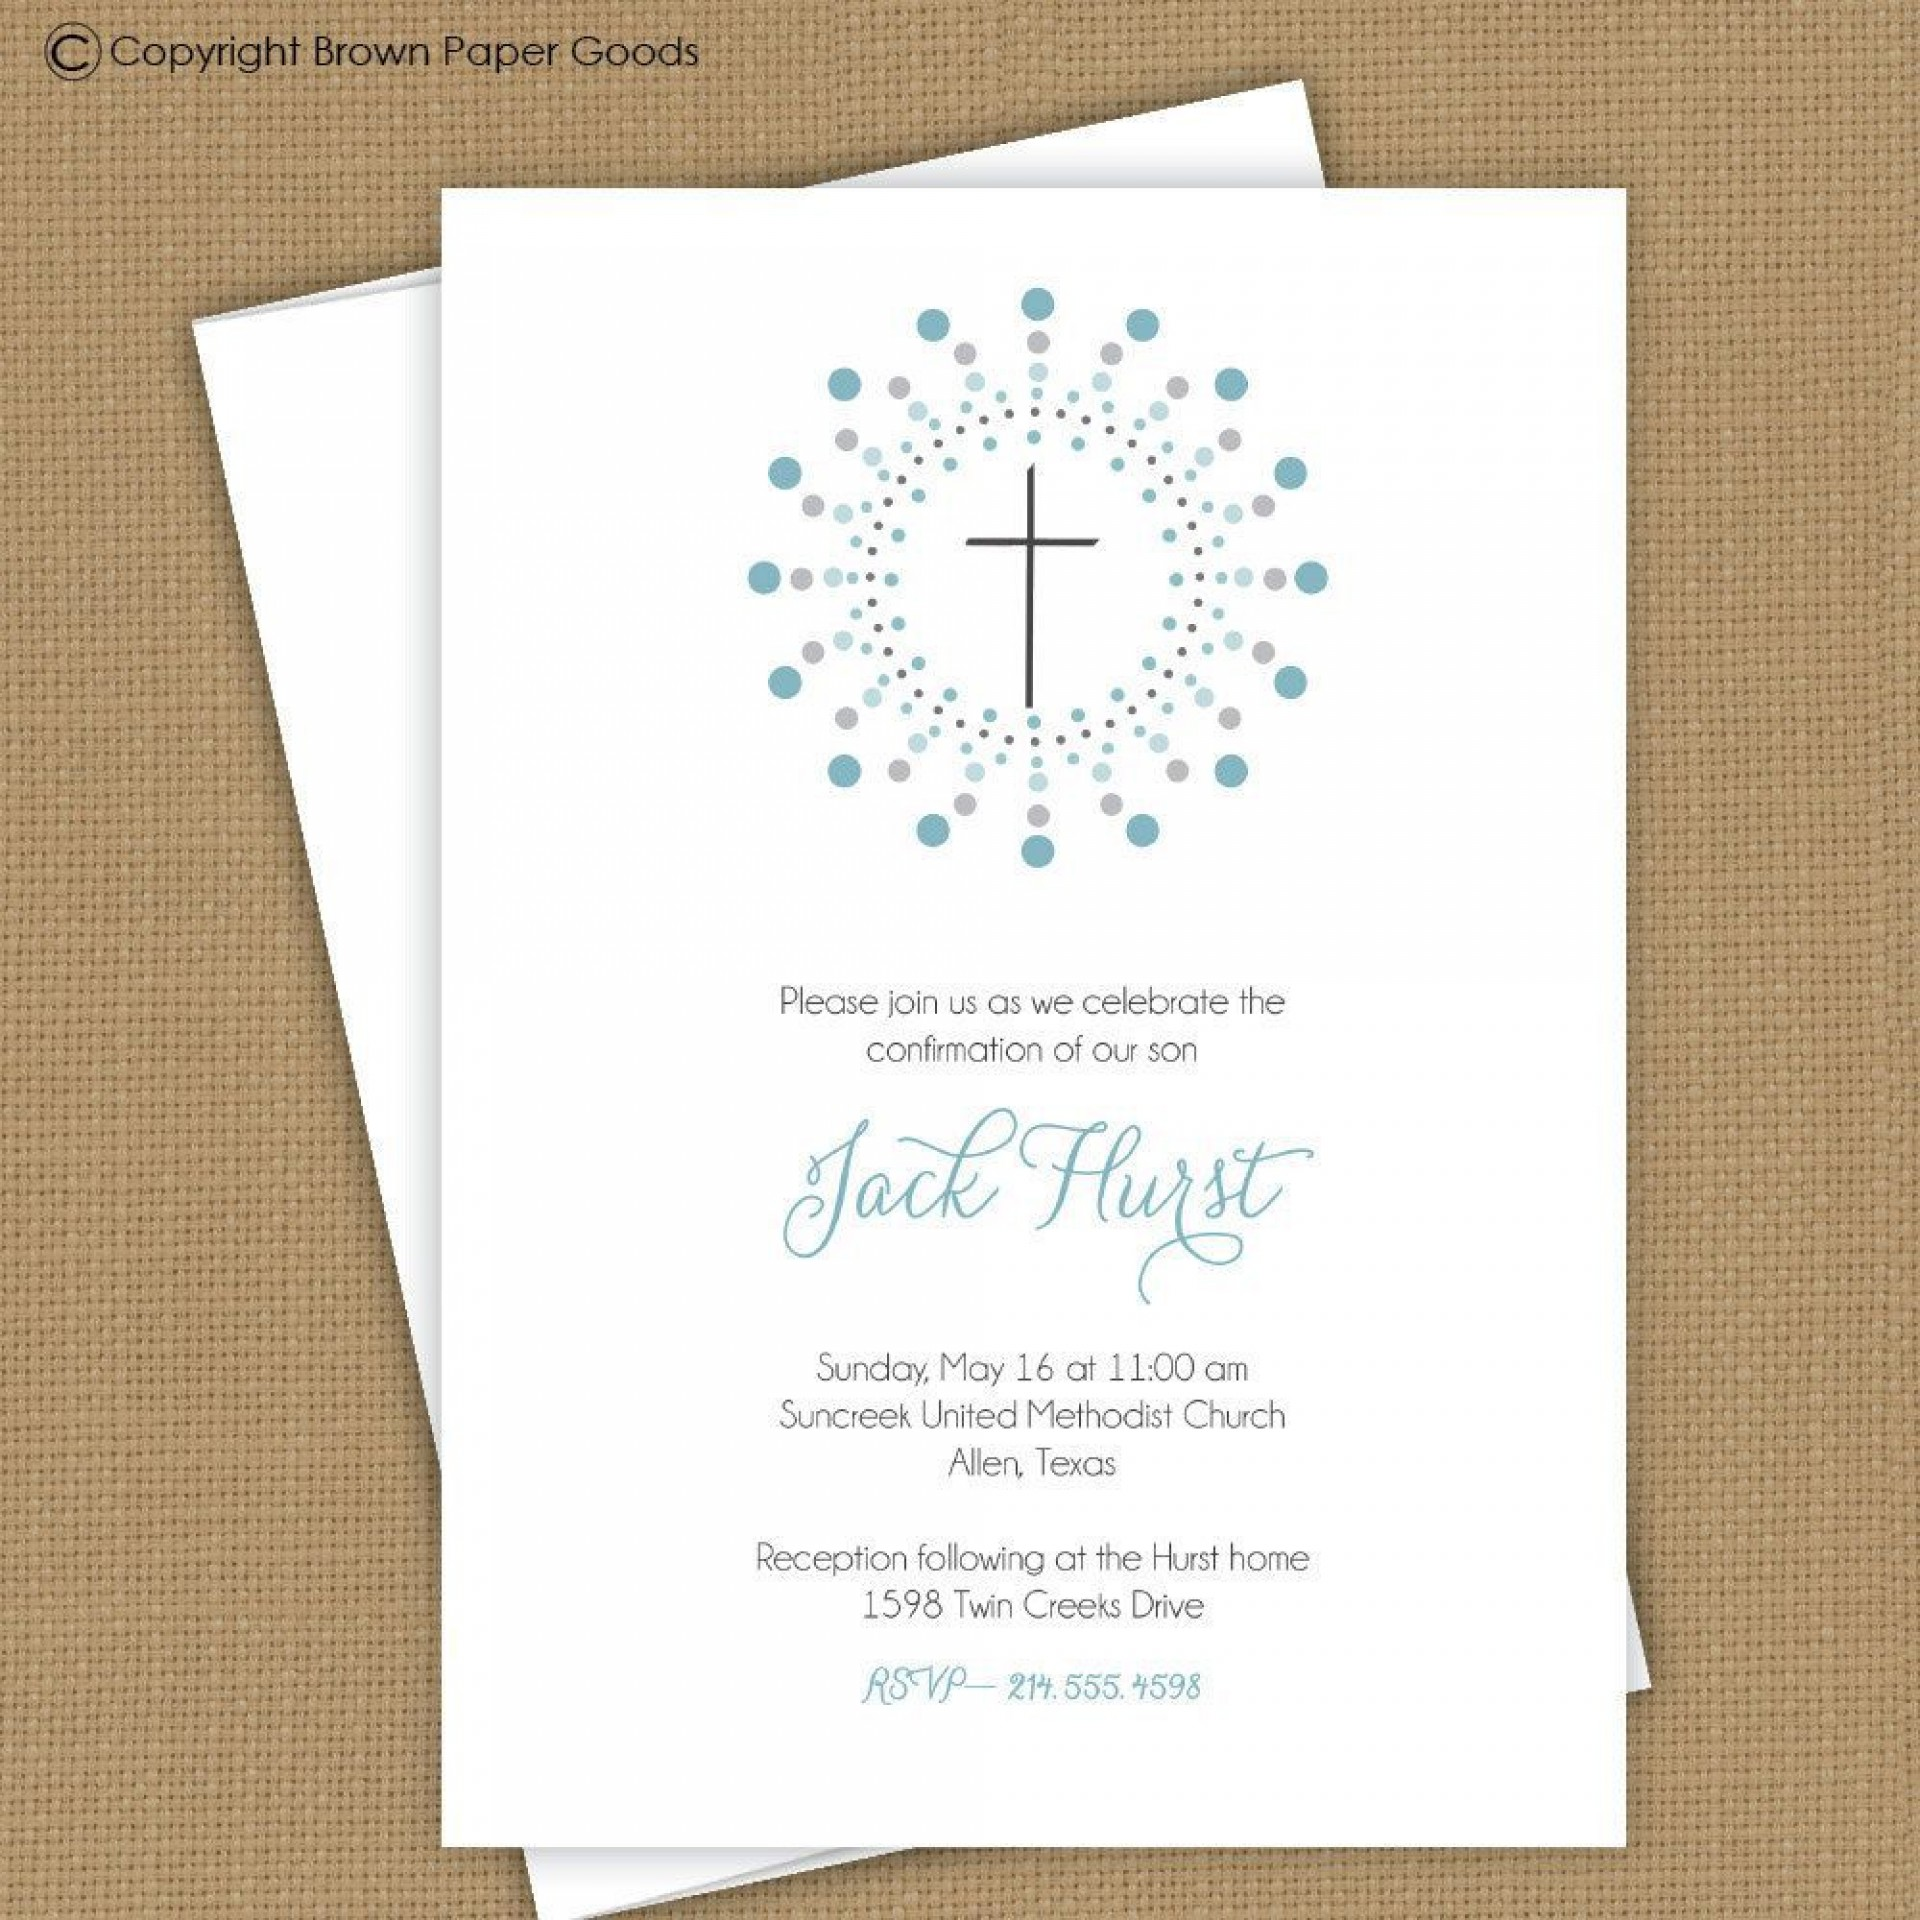 001 Exceptional Free Religiou Invitation Template Printable Highest Clarity 1920